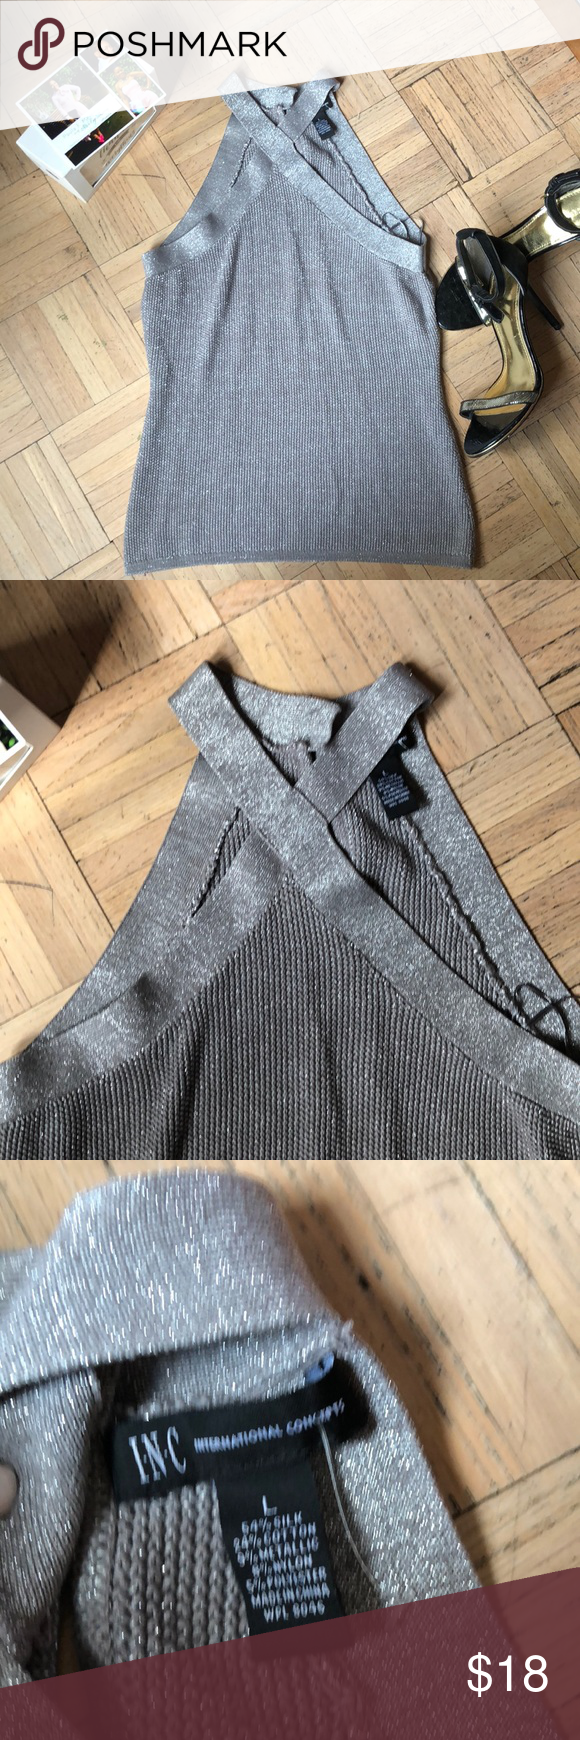 Sleeveless Halter Silver Sweater w/ high neck Top has a criss cross feature at the neck and button closure in the back. My items are lovingly worn & taken care of; all in good condition. Follow me on Facebook @paulafmoreno or Instagram @HarlemQT: tag me so I can show #poshlove! Buy this set or #Bundle 📦 anything in my closet for 10% 💵off total 💰purchase🛍. Send an offer & let's make a deal. INC International Concepts Tops